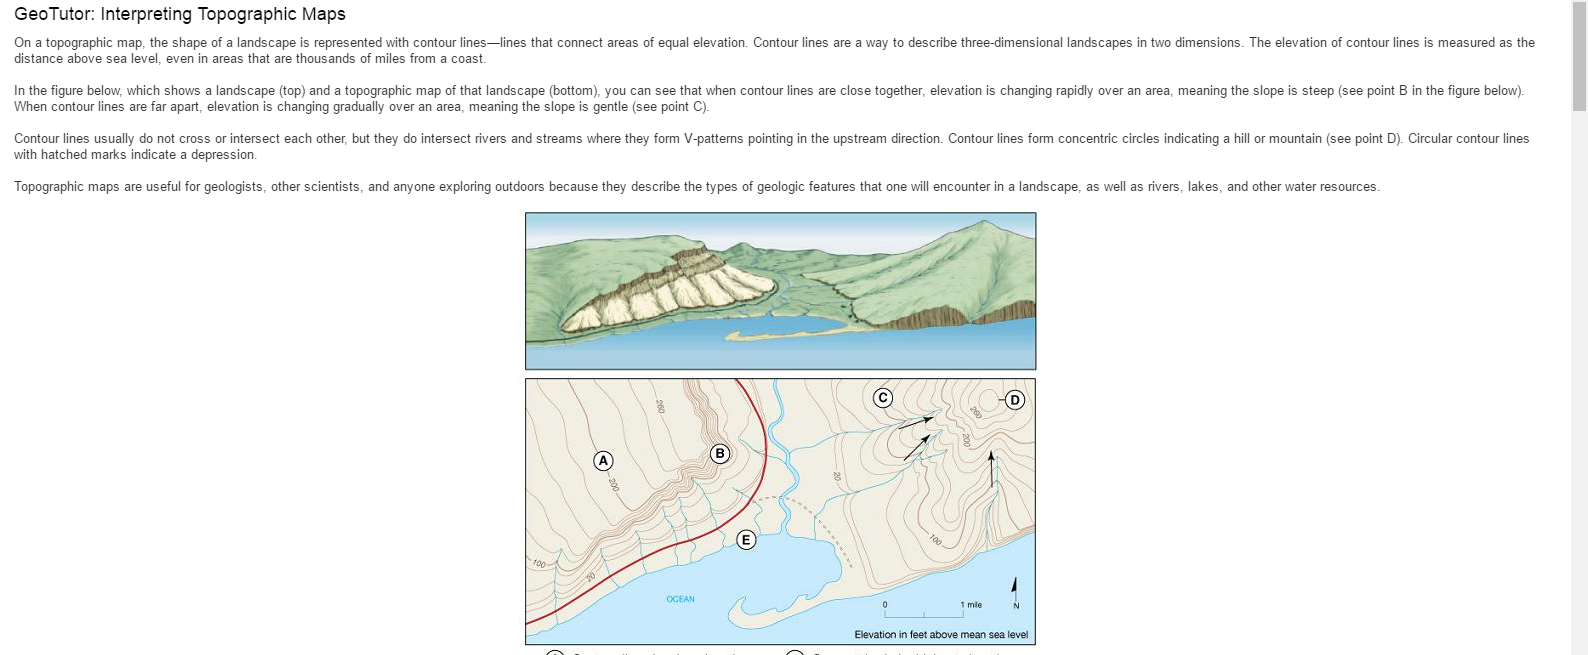 Topographic Map Of A Mountain.Solved Geotutor Interpreting Topographic Maps On A Topog